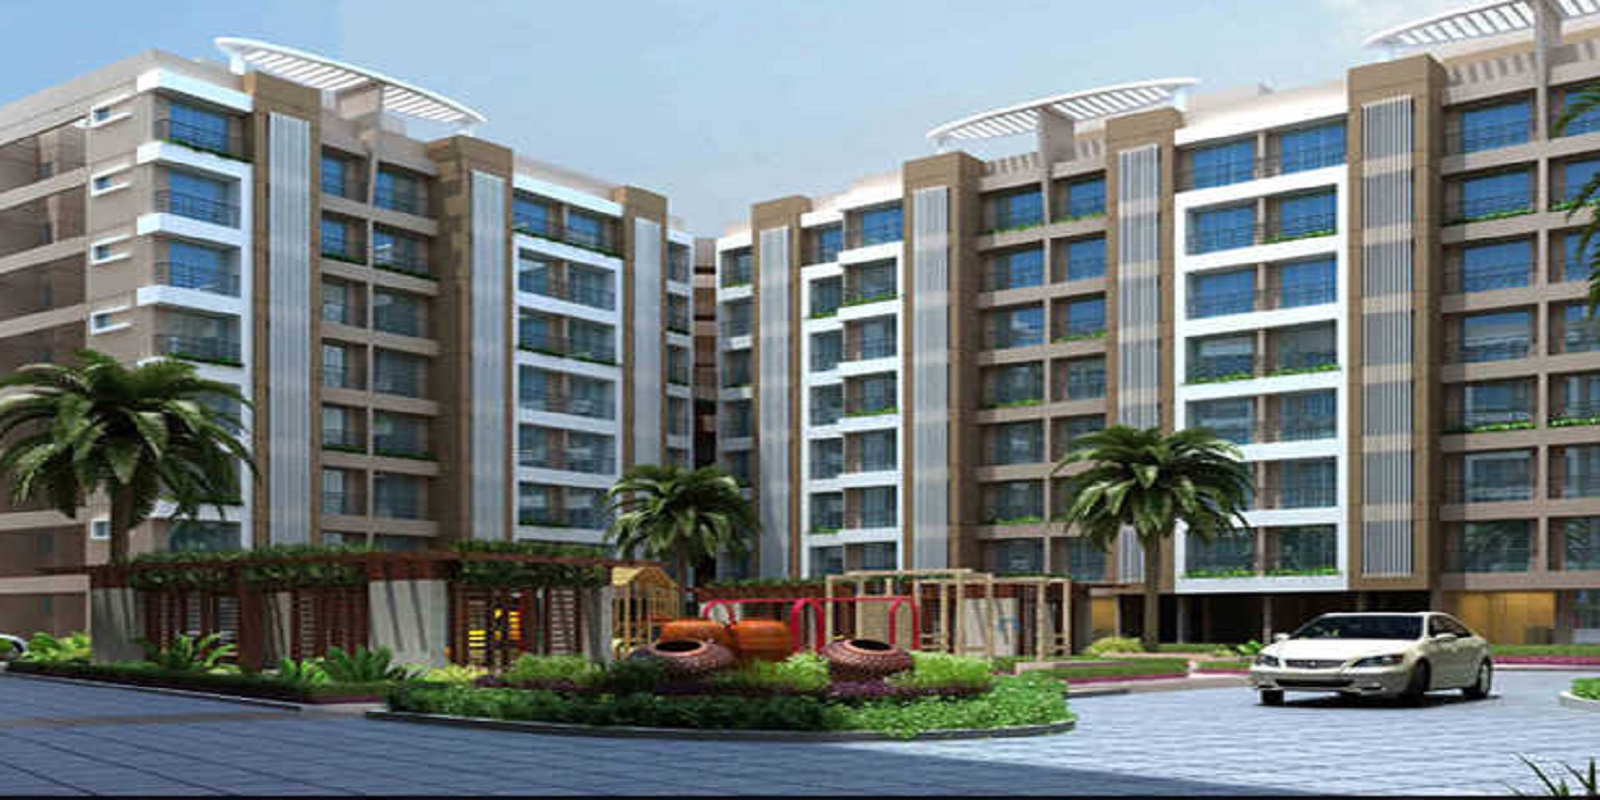 veena dynasty phase 2 project project large image1